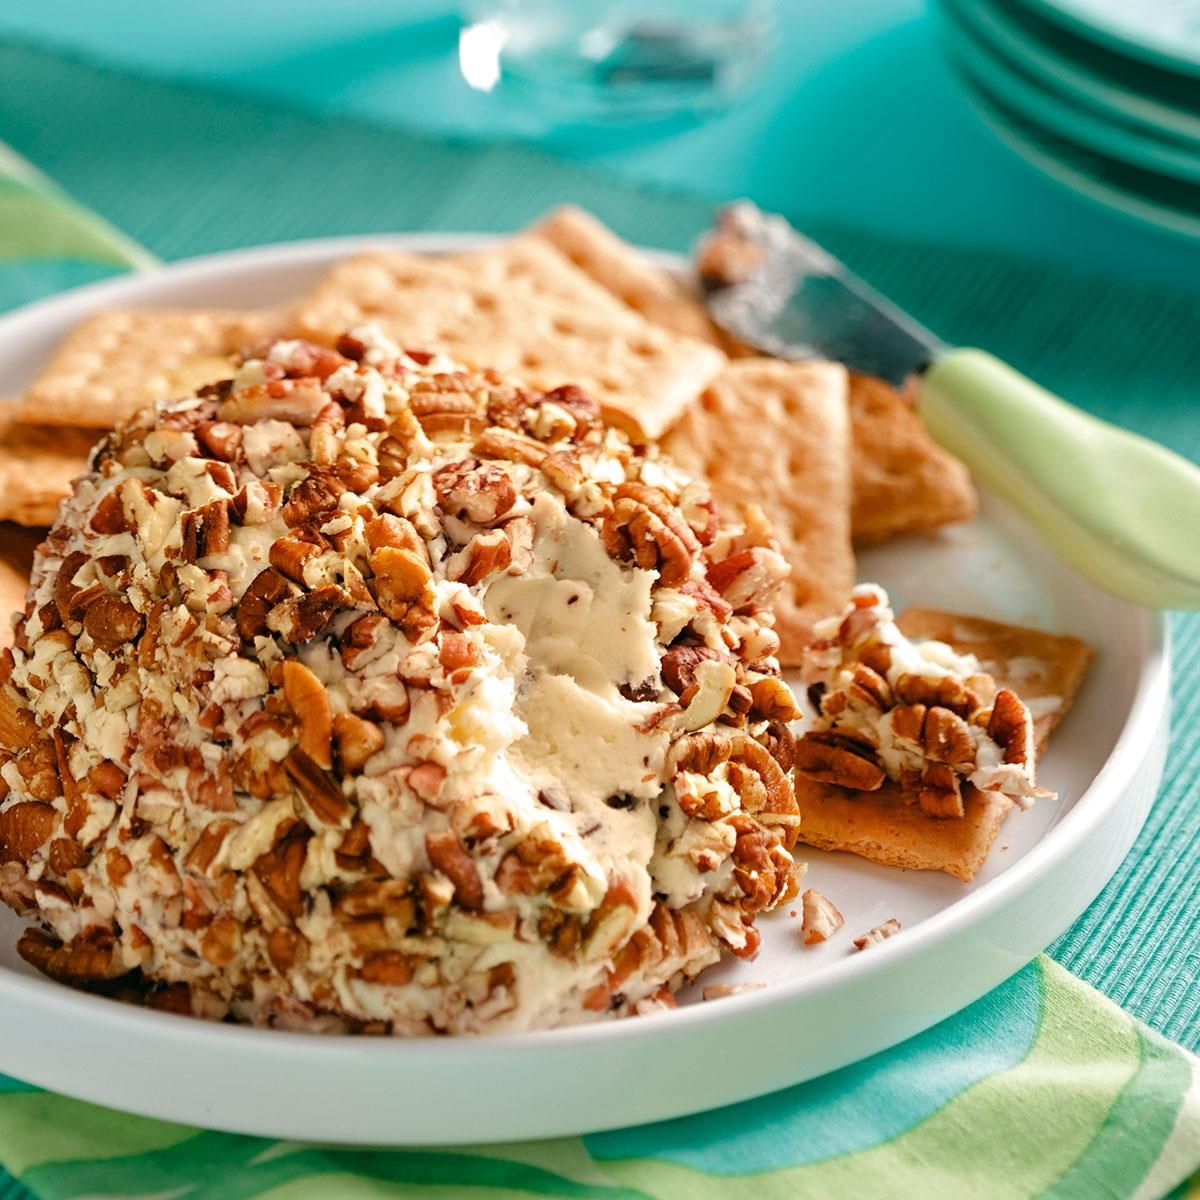 Chocolate Chip Cheese Ball Recipe -Your guests are in for a sweet ...